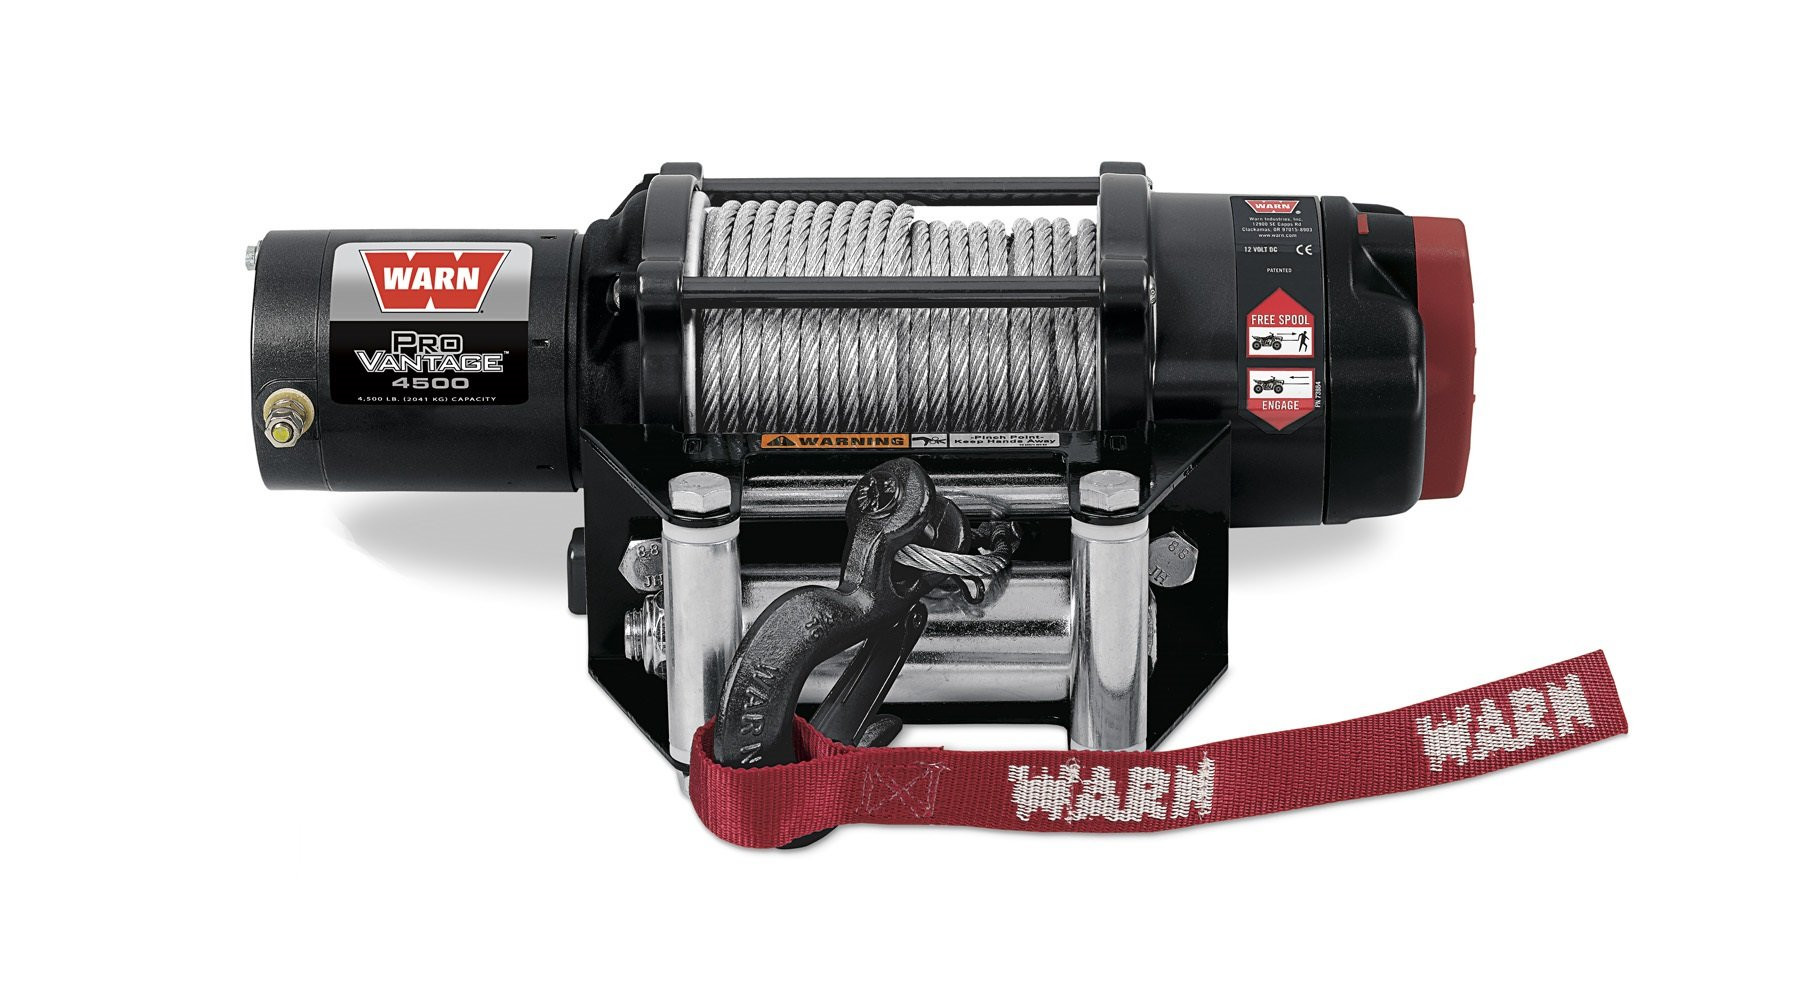 WARN 90450 ProVantage 4500 Winch - 4500 lb. Capacity